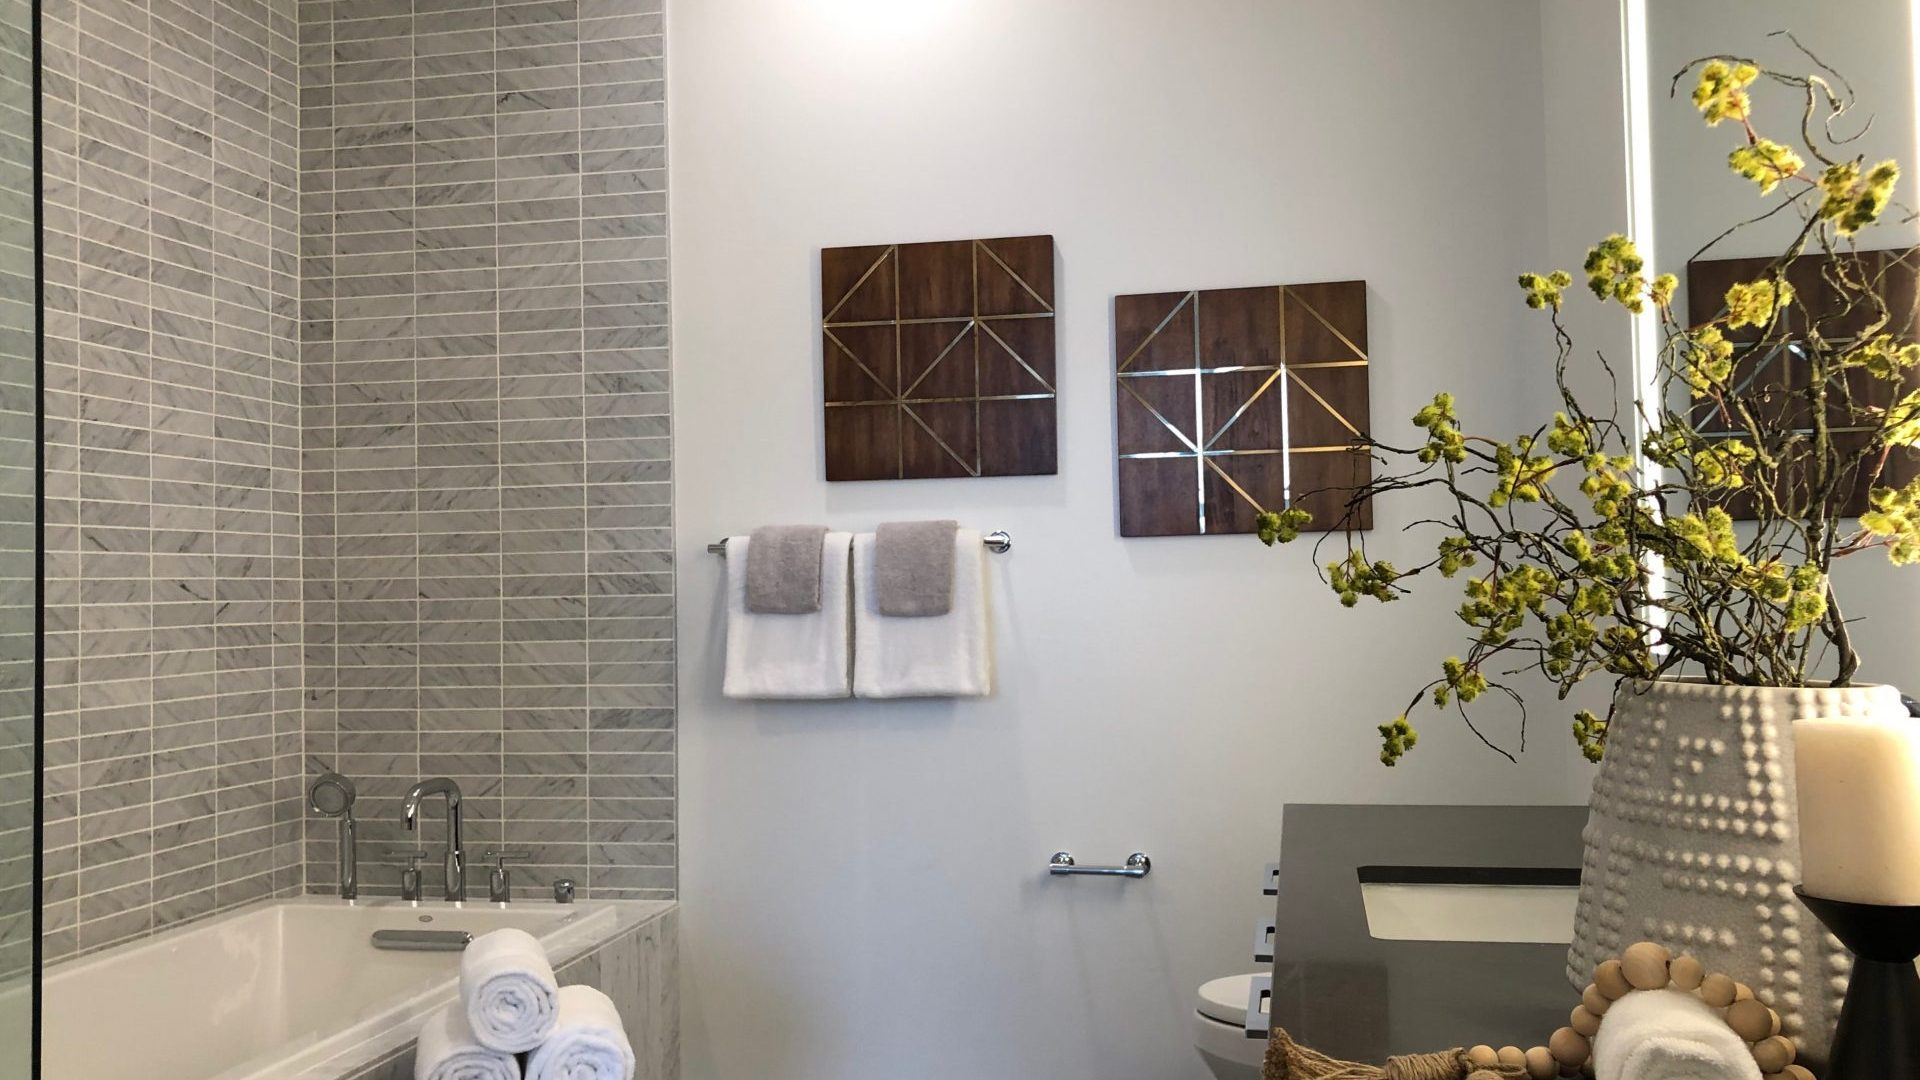 Modern Bathrooms At Arrivé Apartments in Seattle, WA